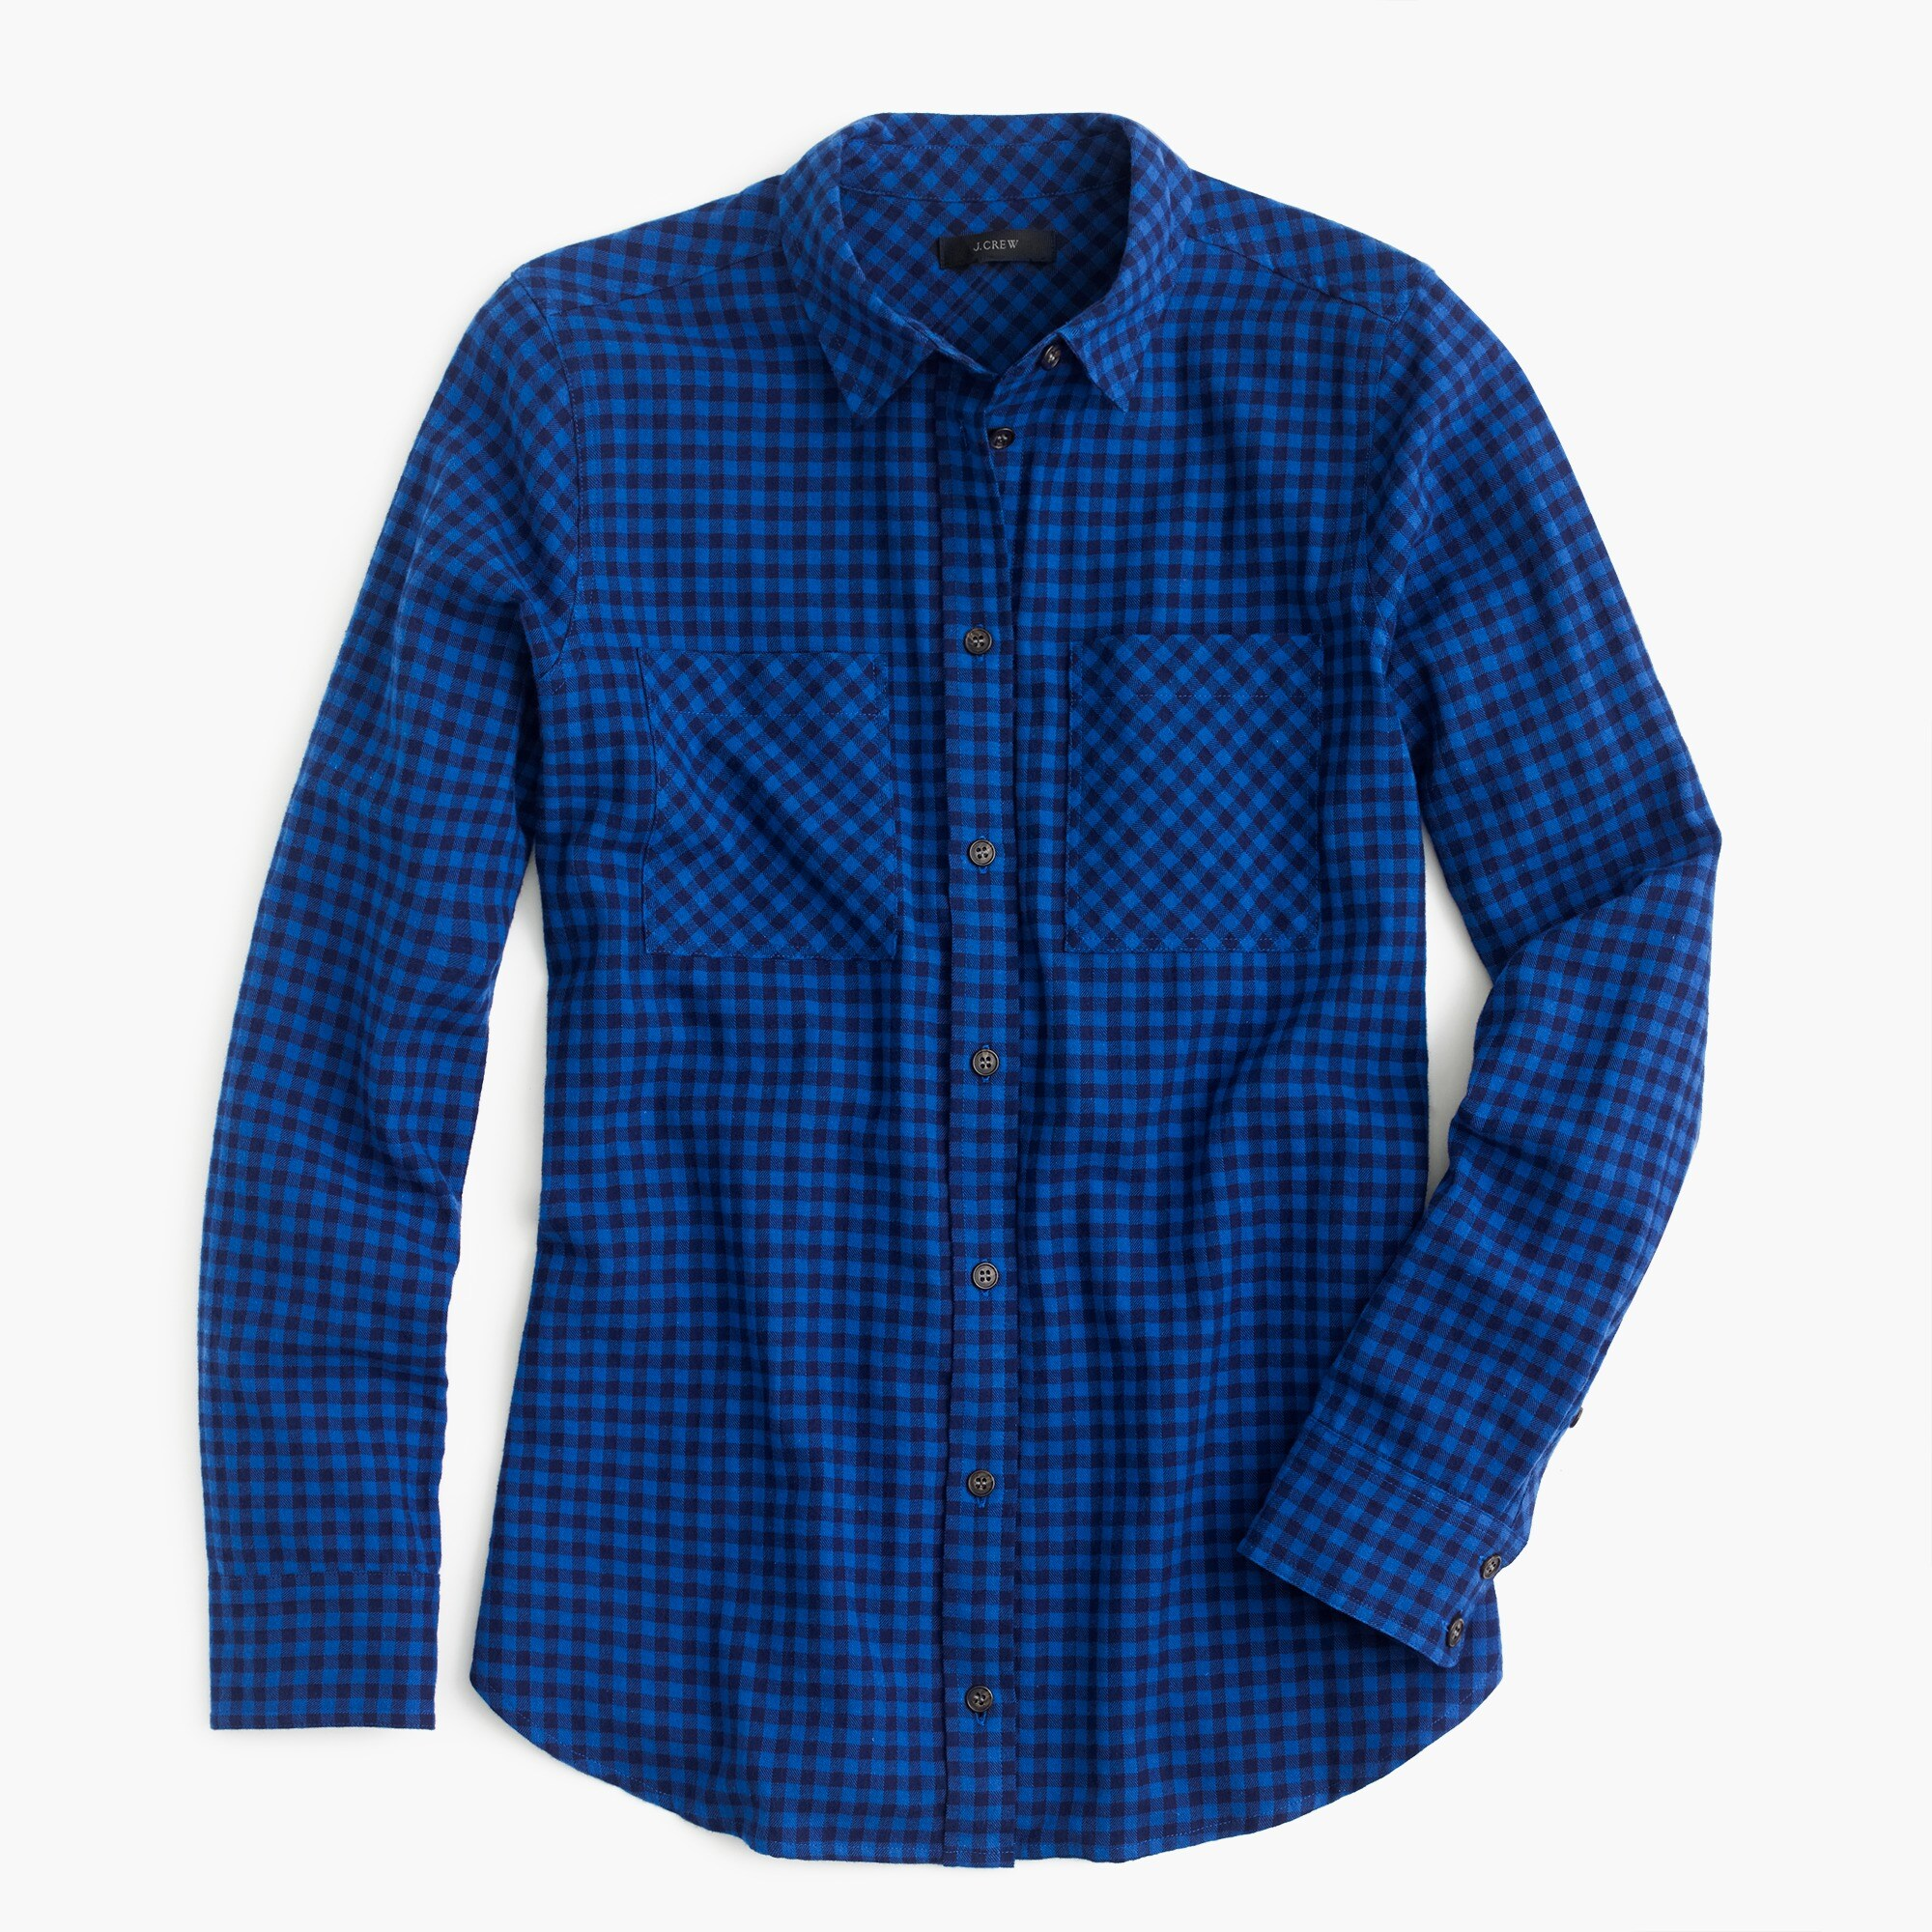 Tall boy shirt in mini buffalo check